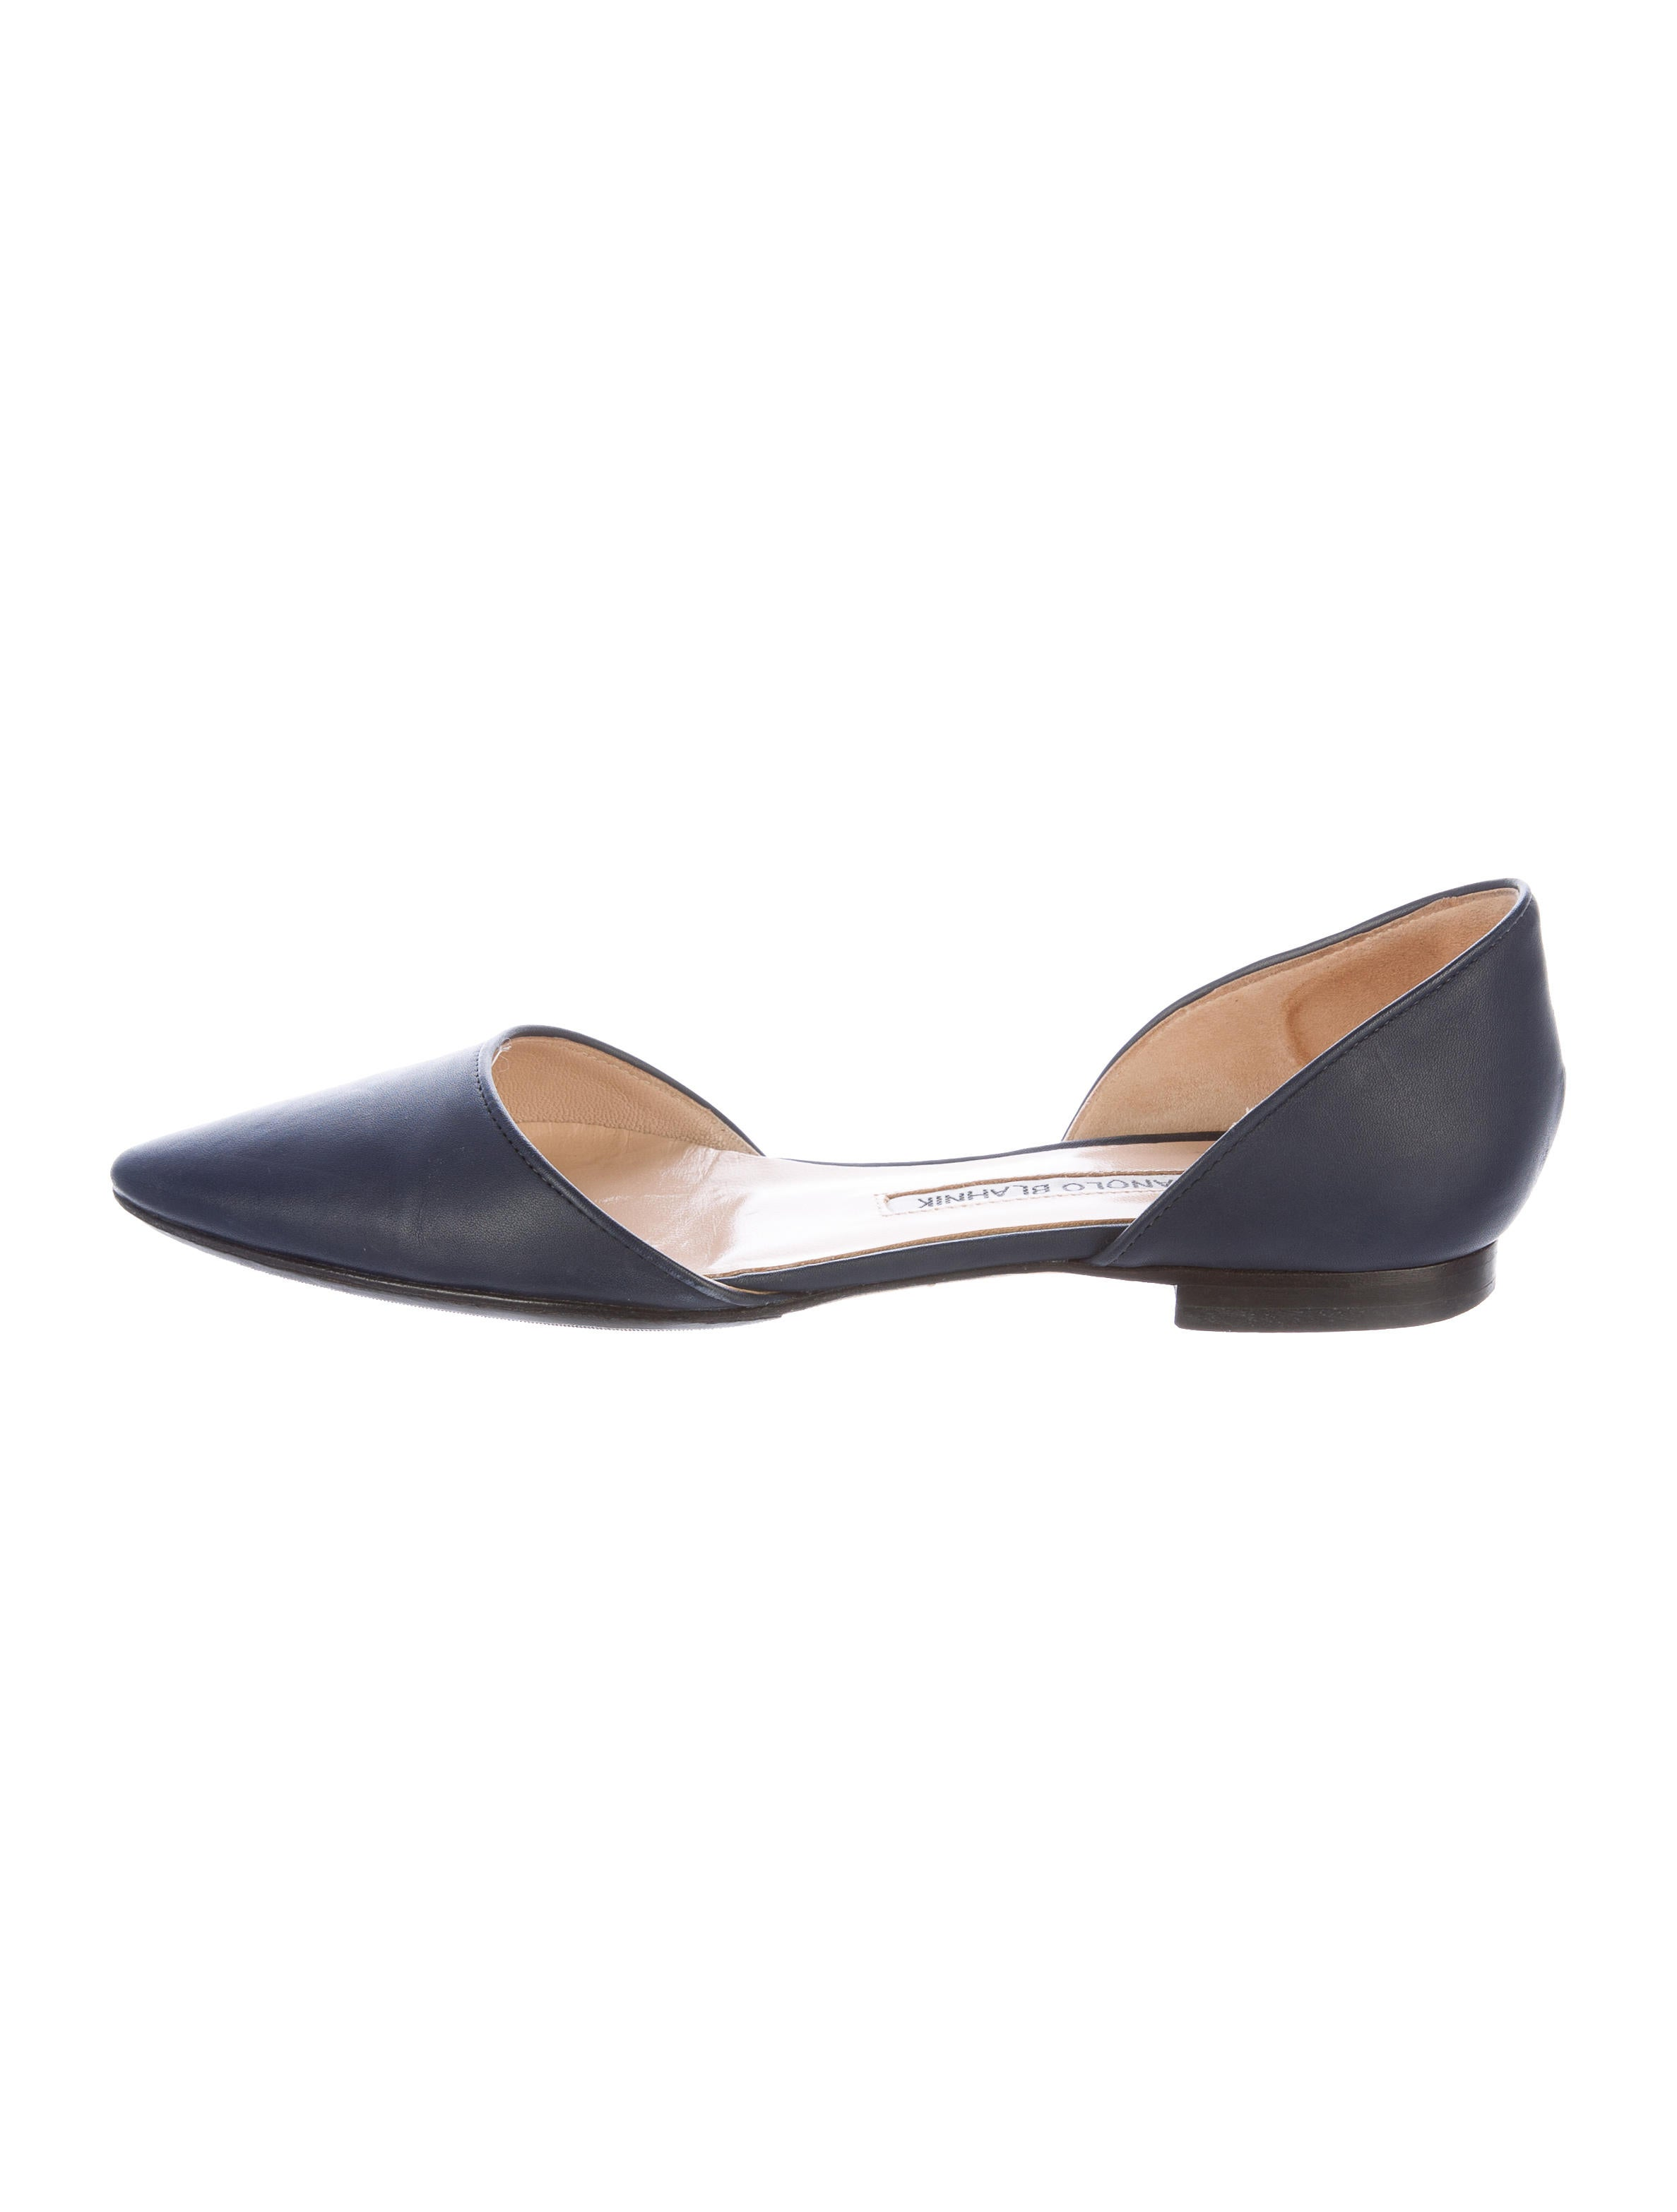 Shoes and handbags for women. Shoreside d'Orsay Flats - Free Shipping available at it24-ieop.gq